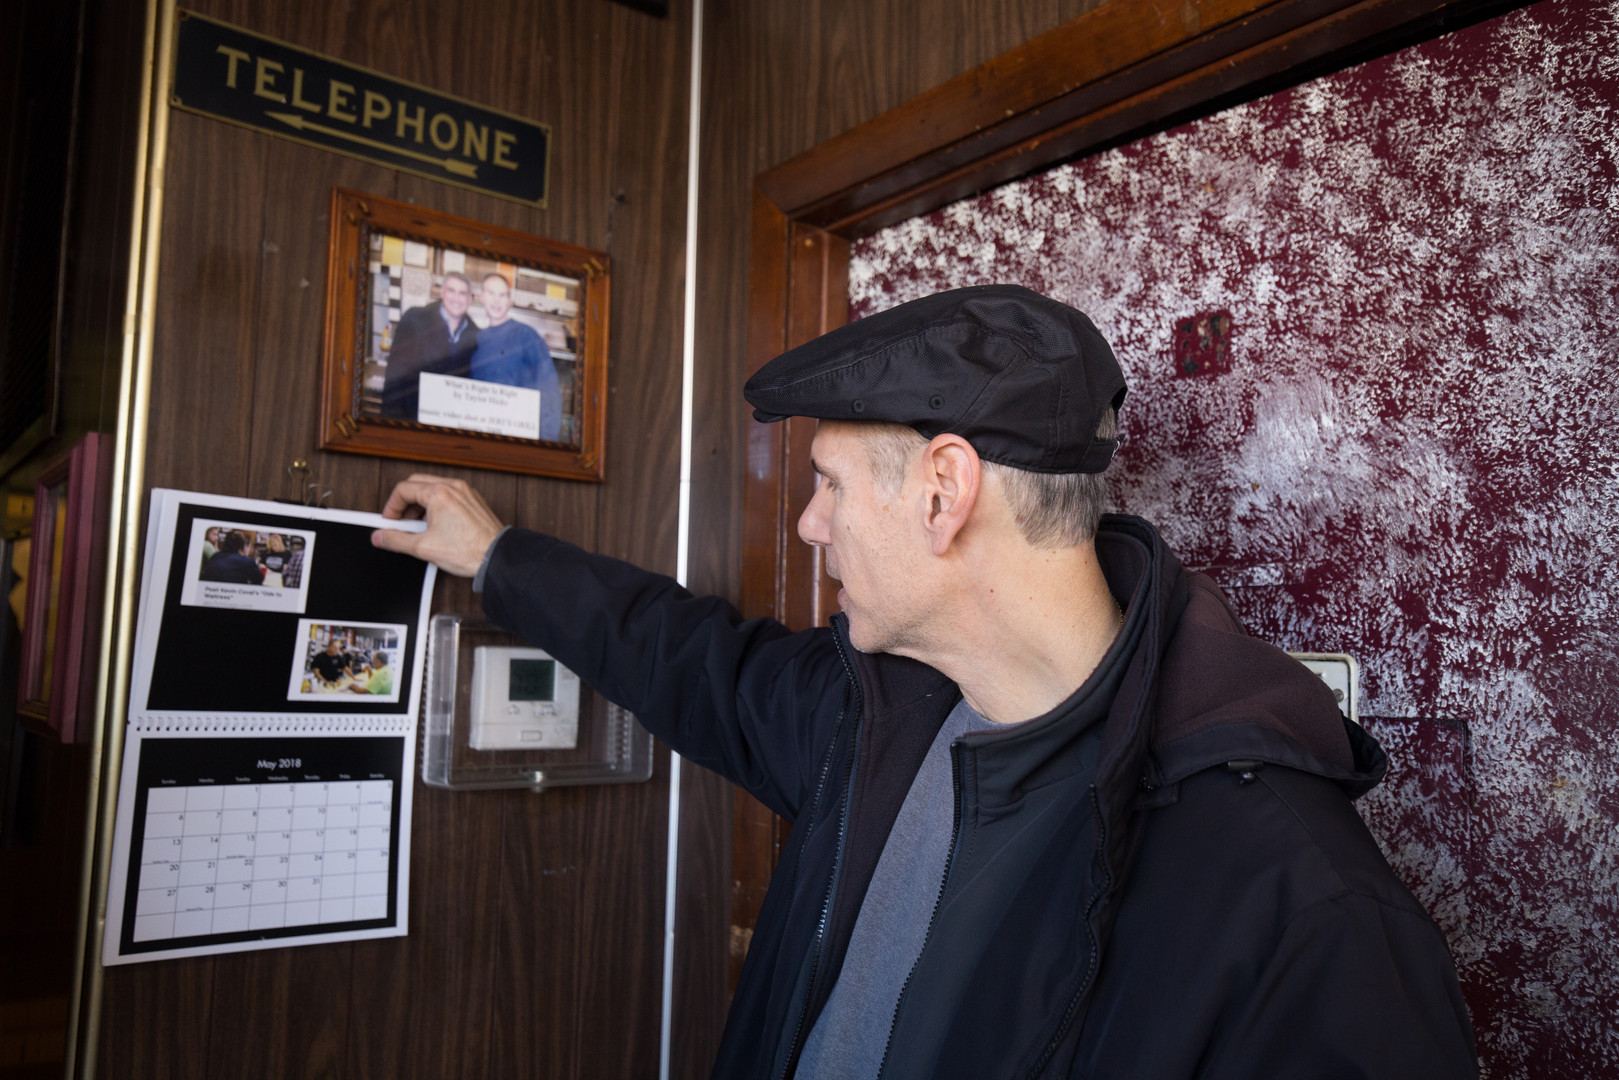 2:01 p.m. Frank flips through the calendar that he makes for Jeri's every year. The calendar includes photos of both the crew and customers.